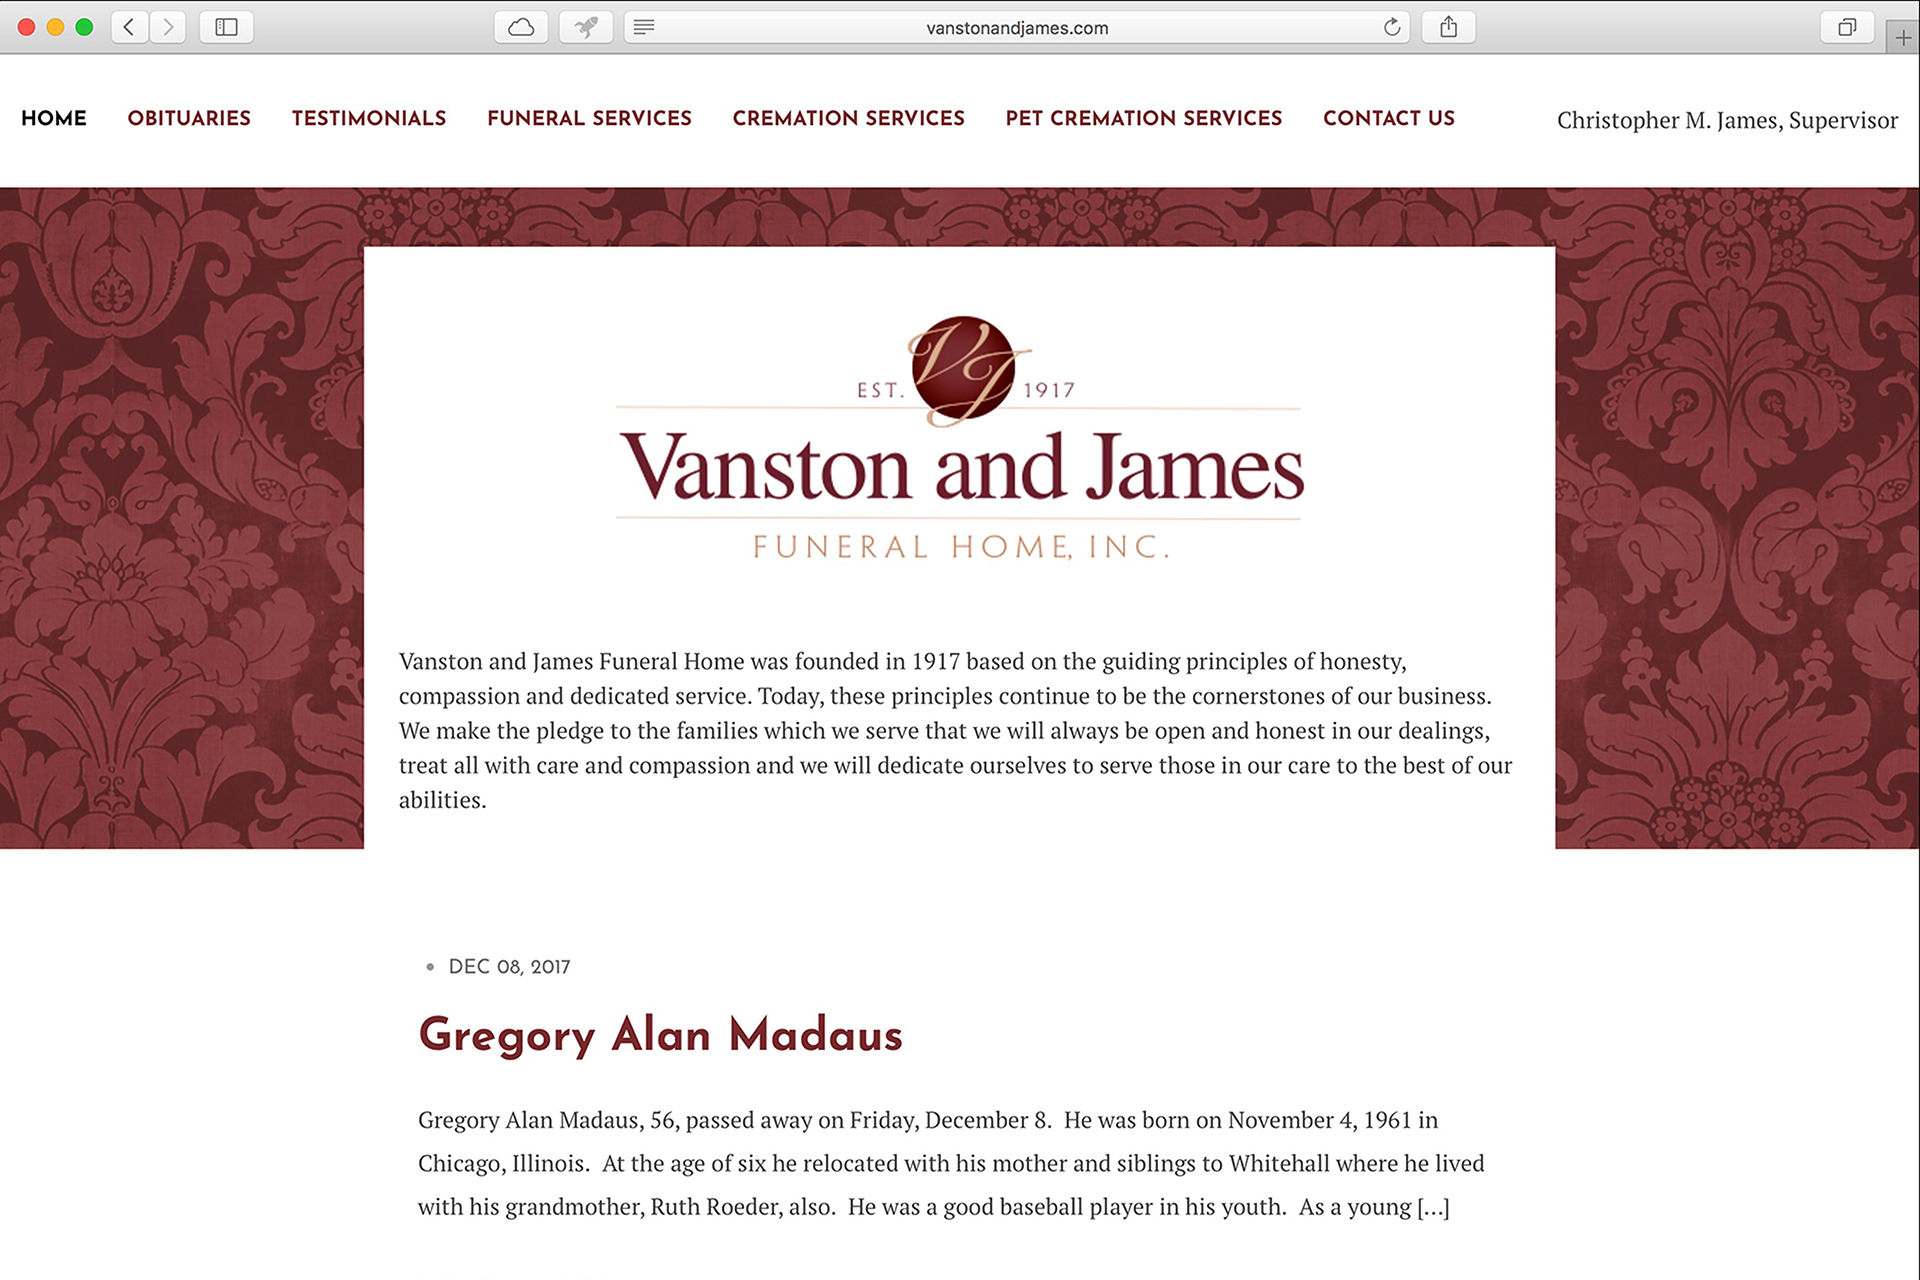 Vanston & James Funeral Home – A Responsive Web Site